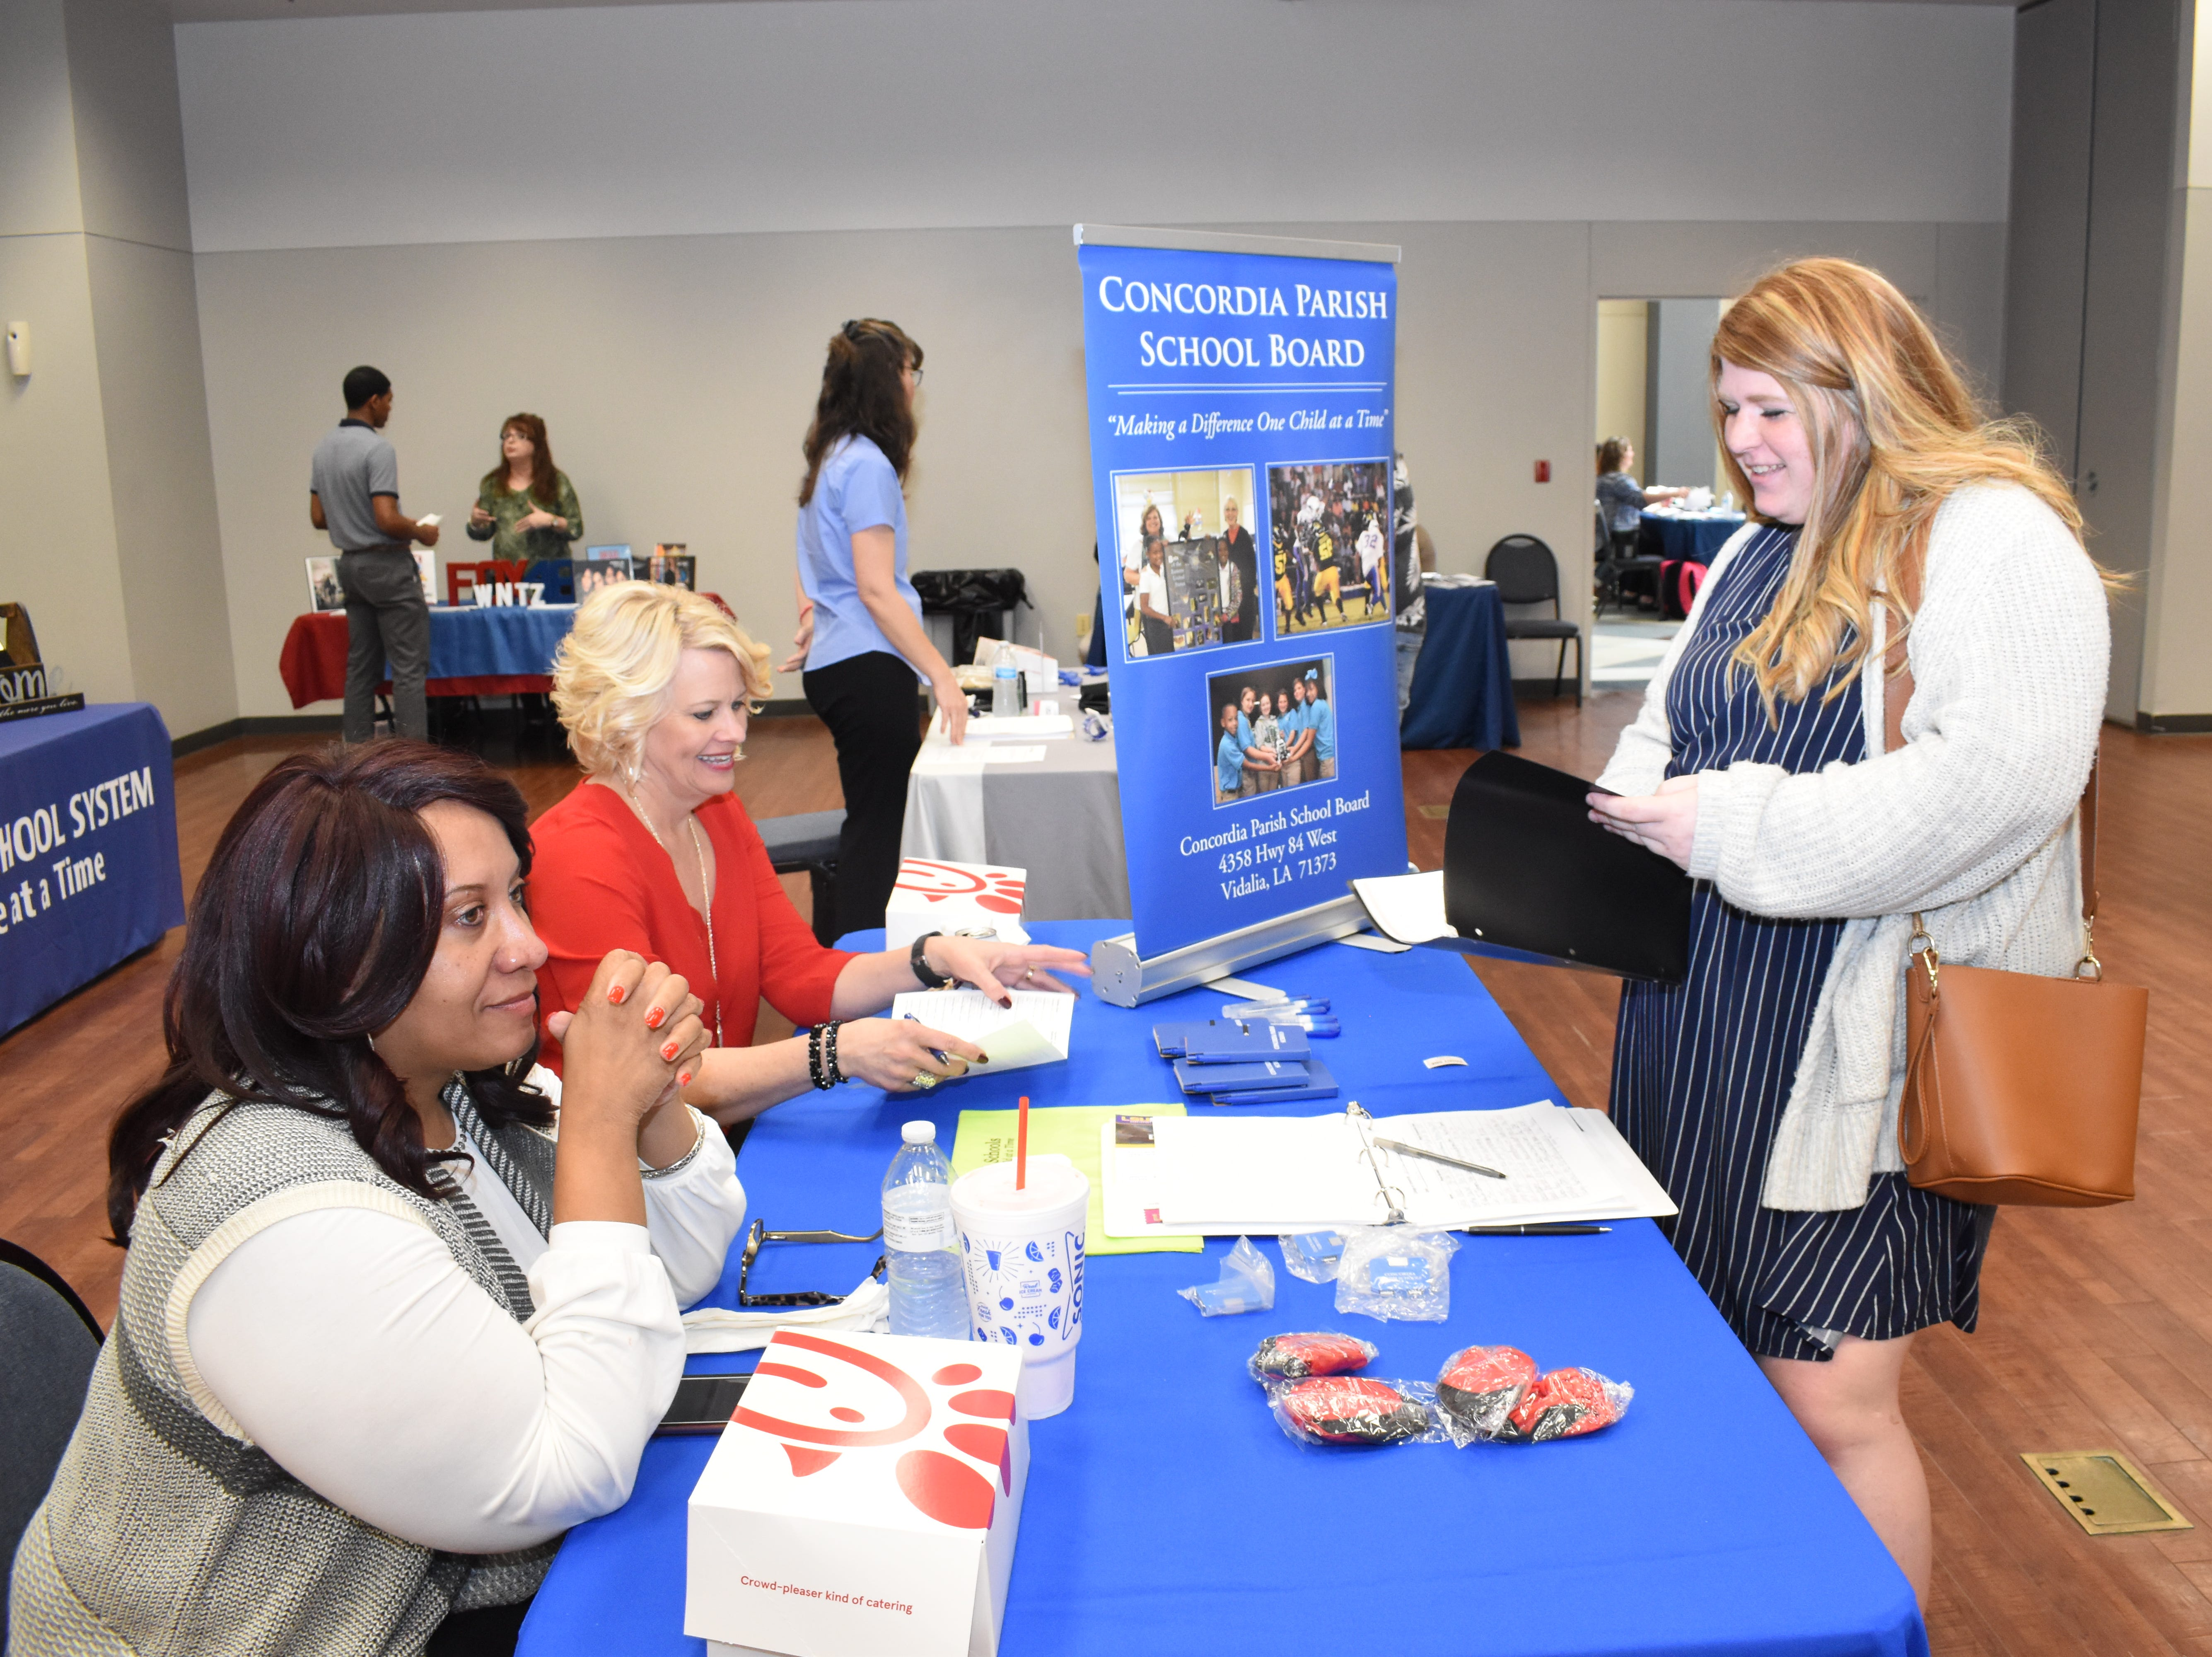 Louisiana College held a career fair Thursday, March 14, 2019. About 34 area businesses participated in the fair. Those included law enforcement, education, health care and retail.